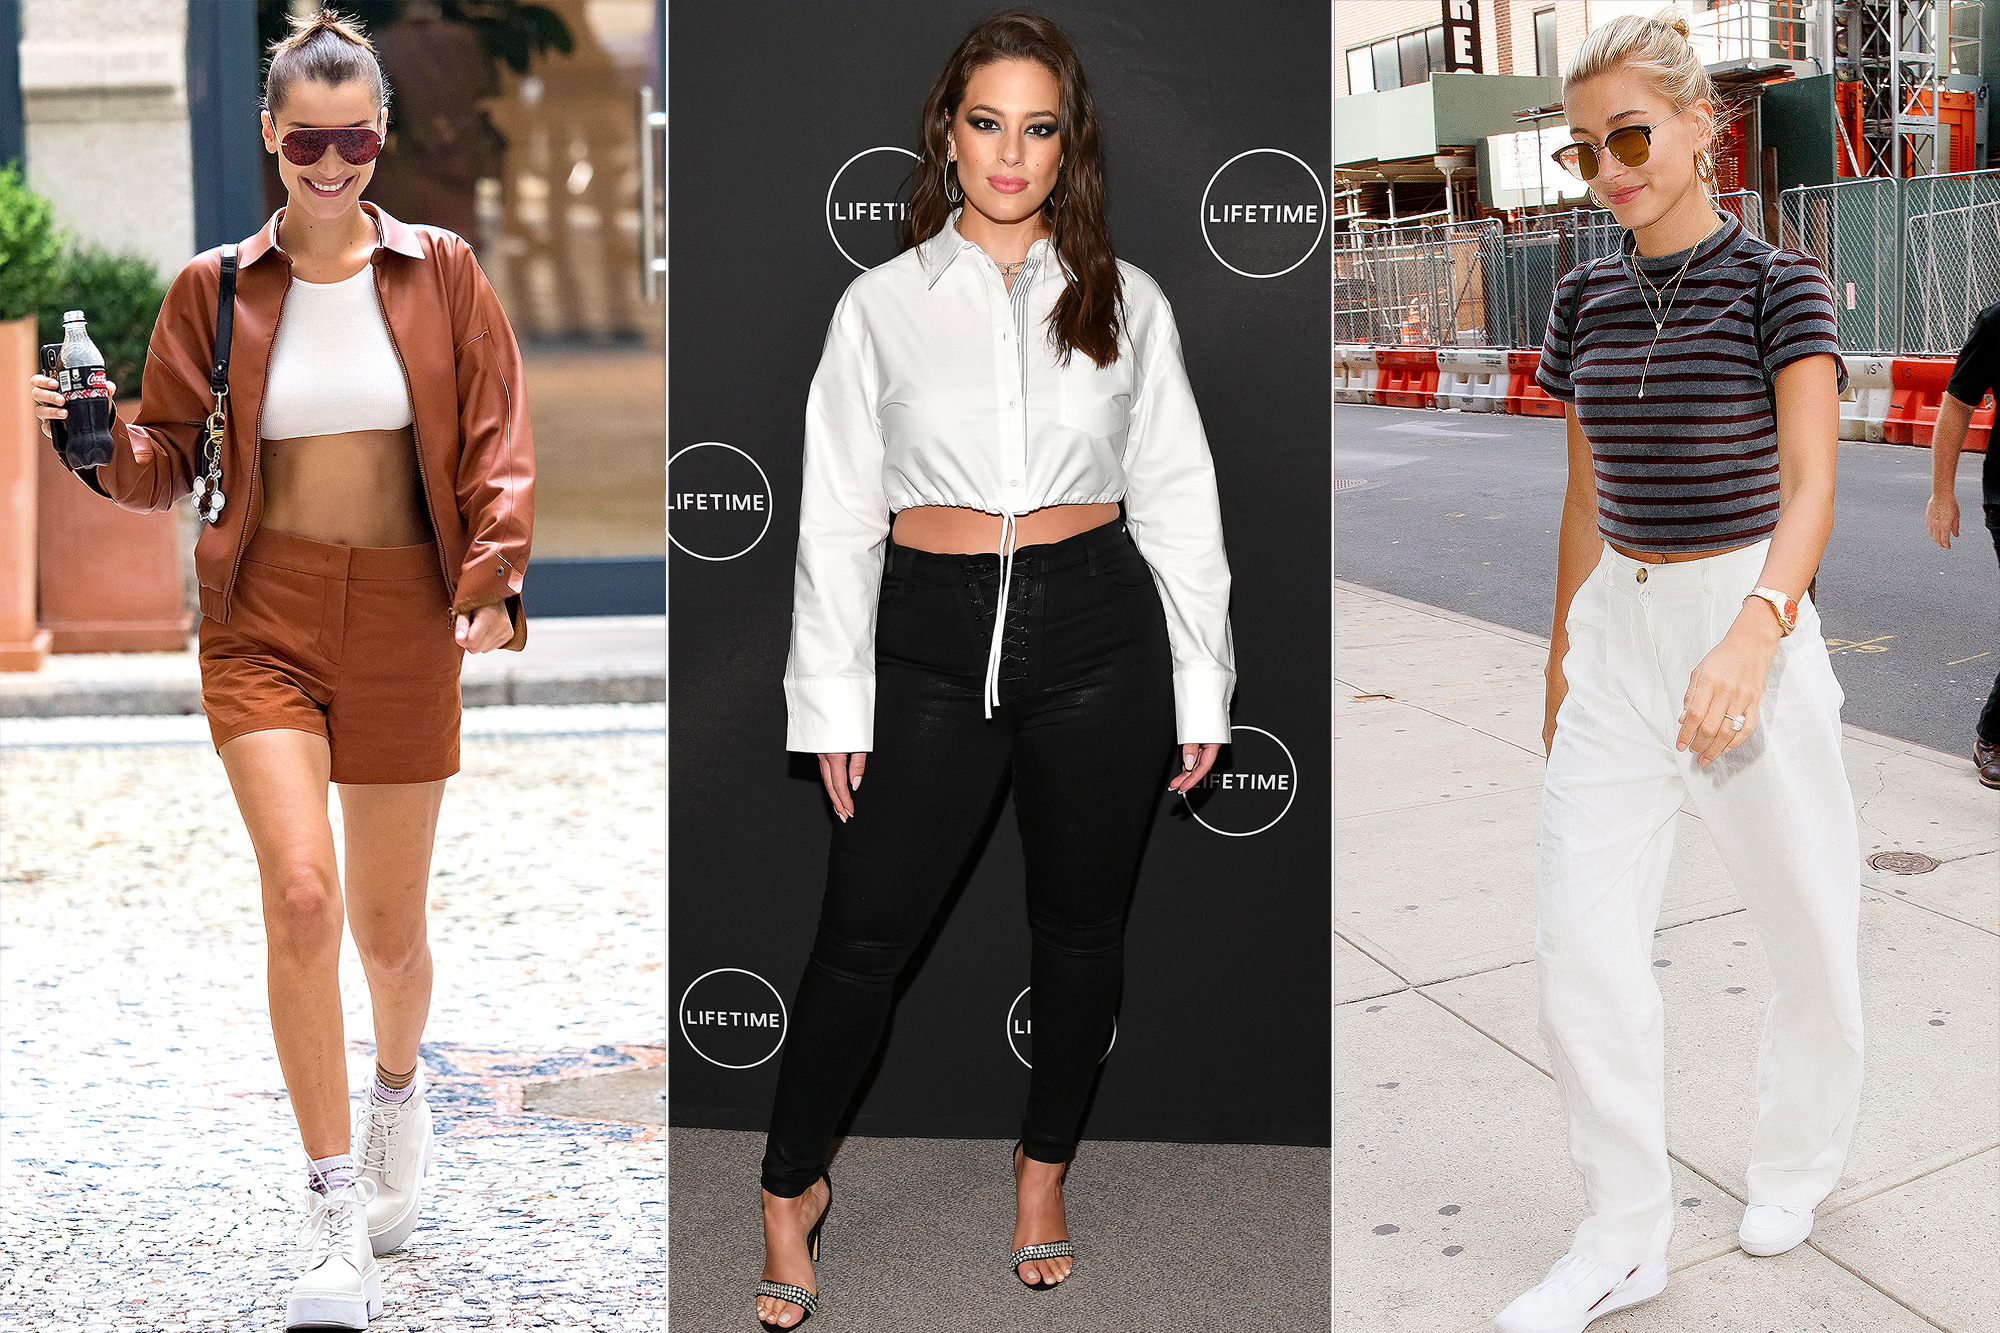 Bella Hadid, Ashley Graham, and Hailey Bieber Wearing Stylish Crop Tops